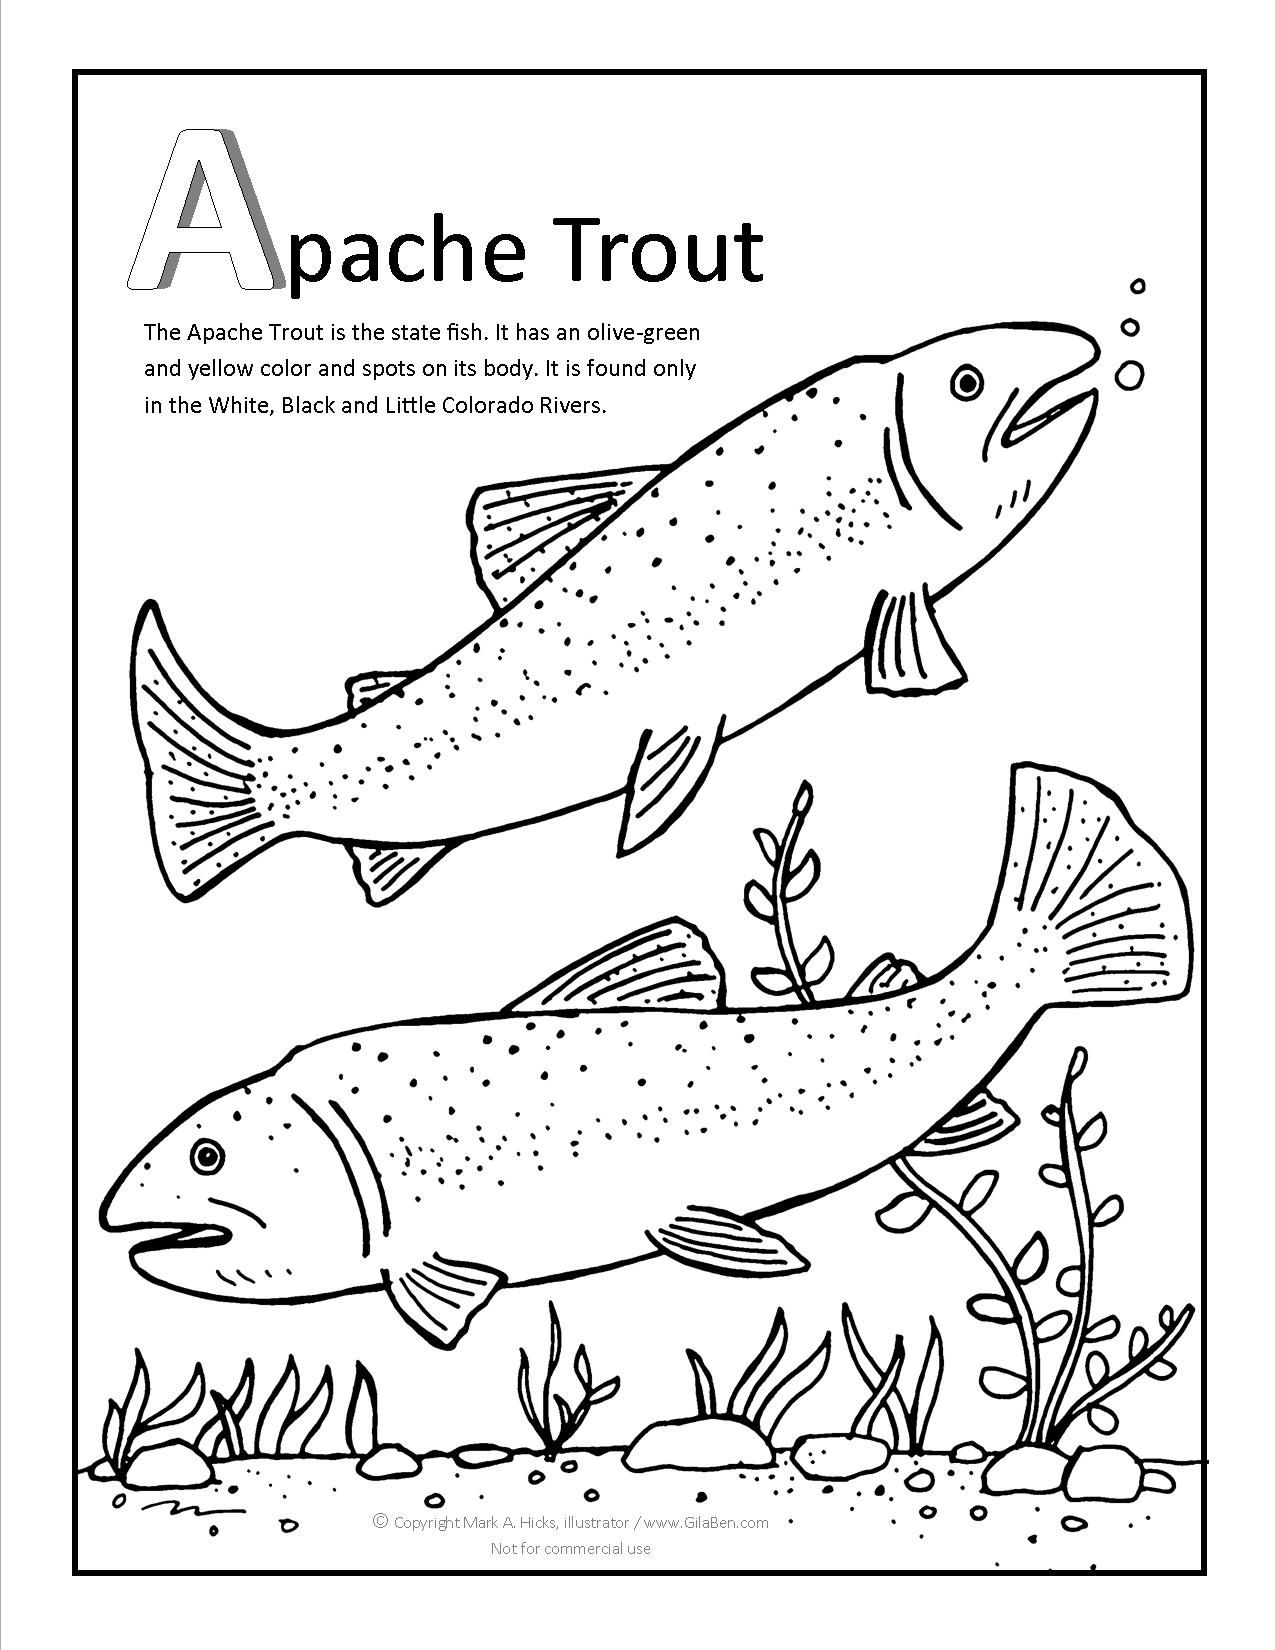 Apache Trout Coloring Page At Gilaben Com Coloring Pages Fish